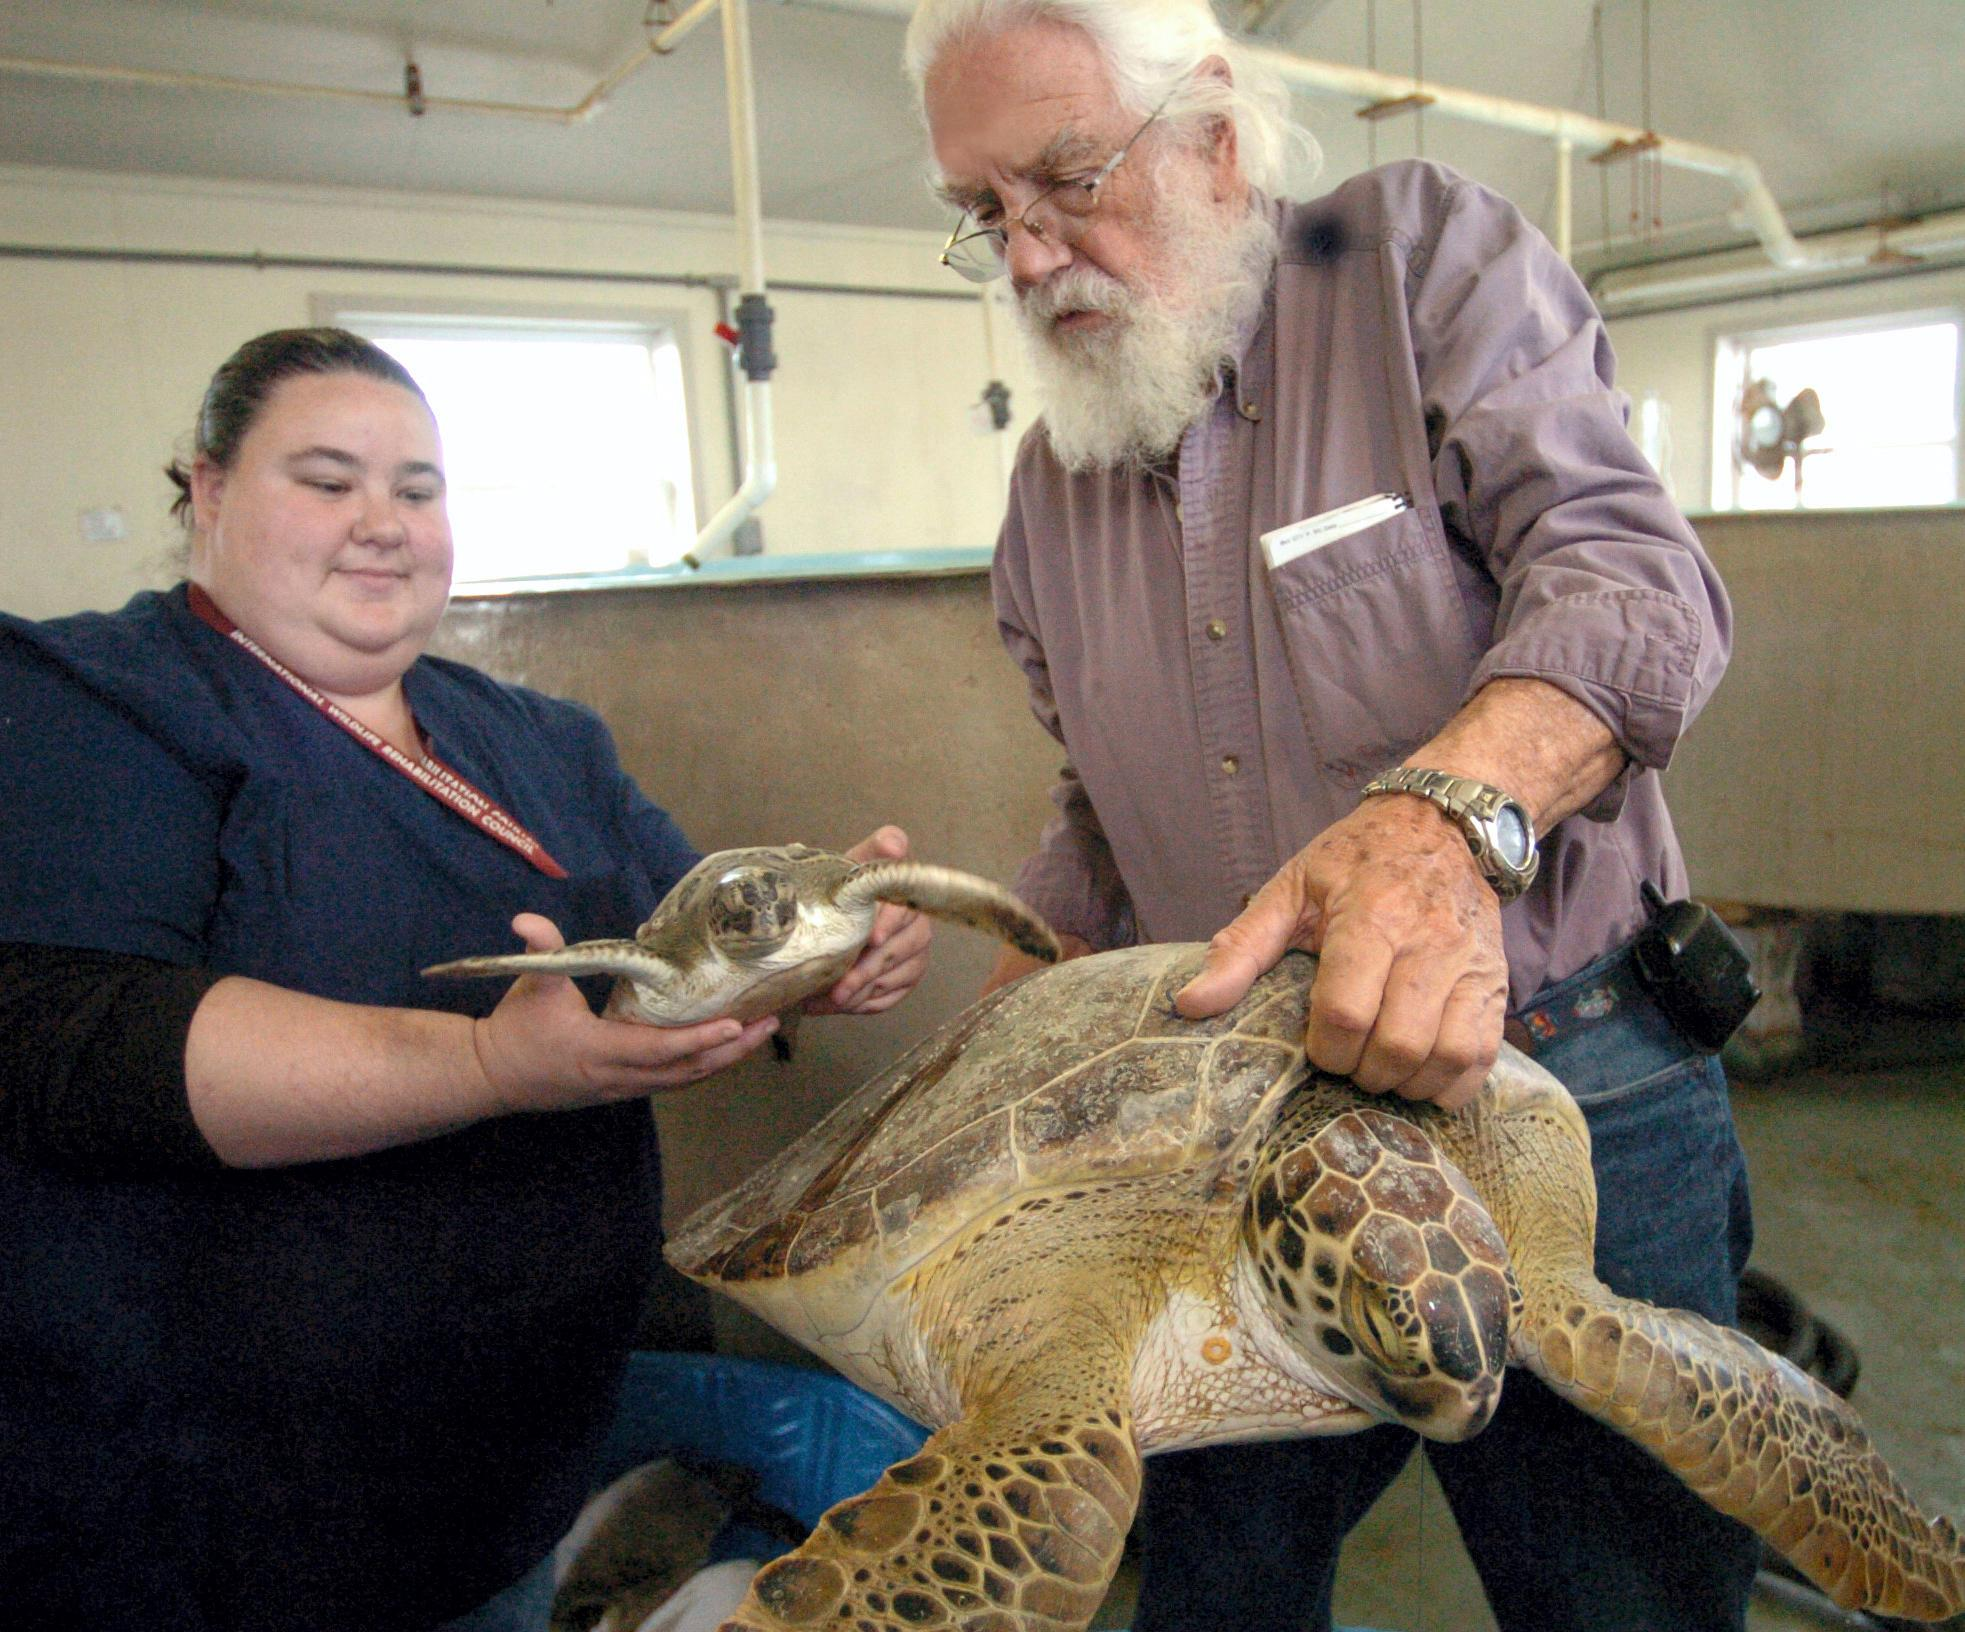 FILE - In this Jan. 11, 2010, file photo, Candice Mottet, left, and Tony Amos, director of the Animal Rehabilitation Keep in Port Aransas, Texas, hold the smallest and biggest green sea turtles that came ashore because of cold temperatures. (AP Photo/Corpus Christi Caller-Times, George Gongora, File)